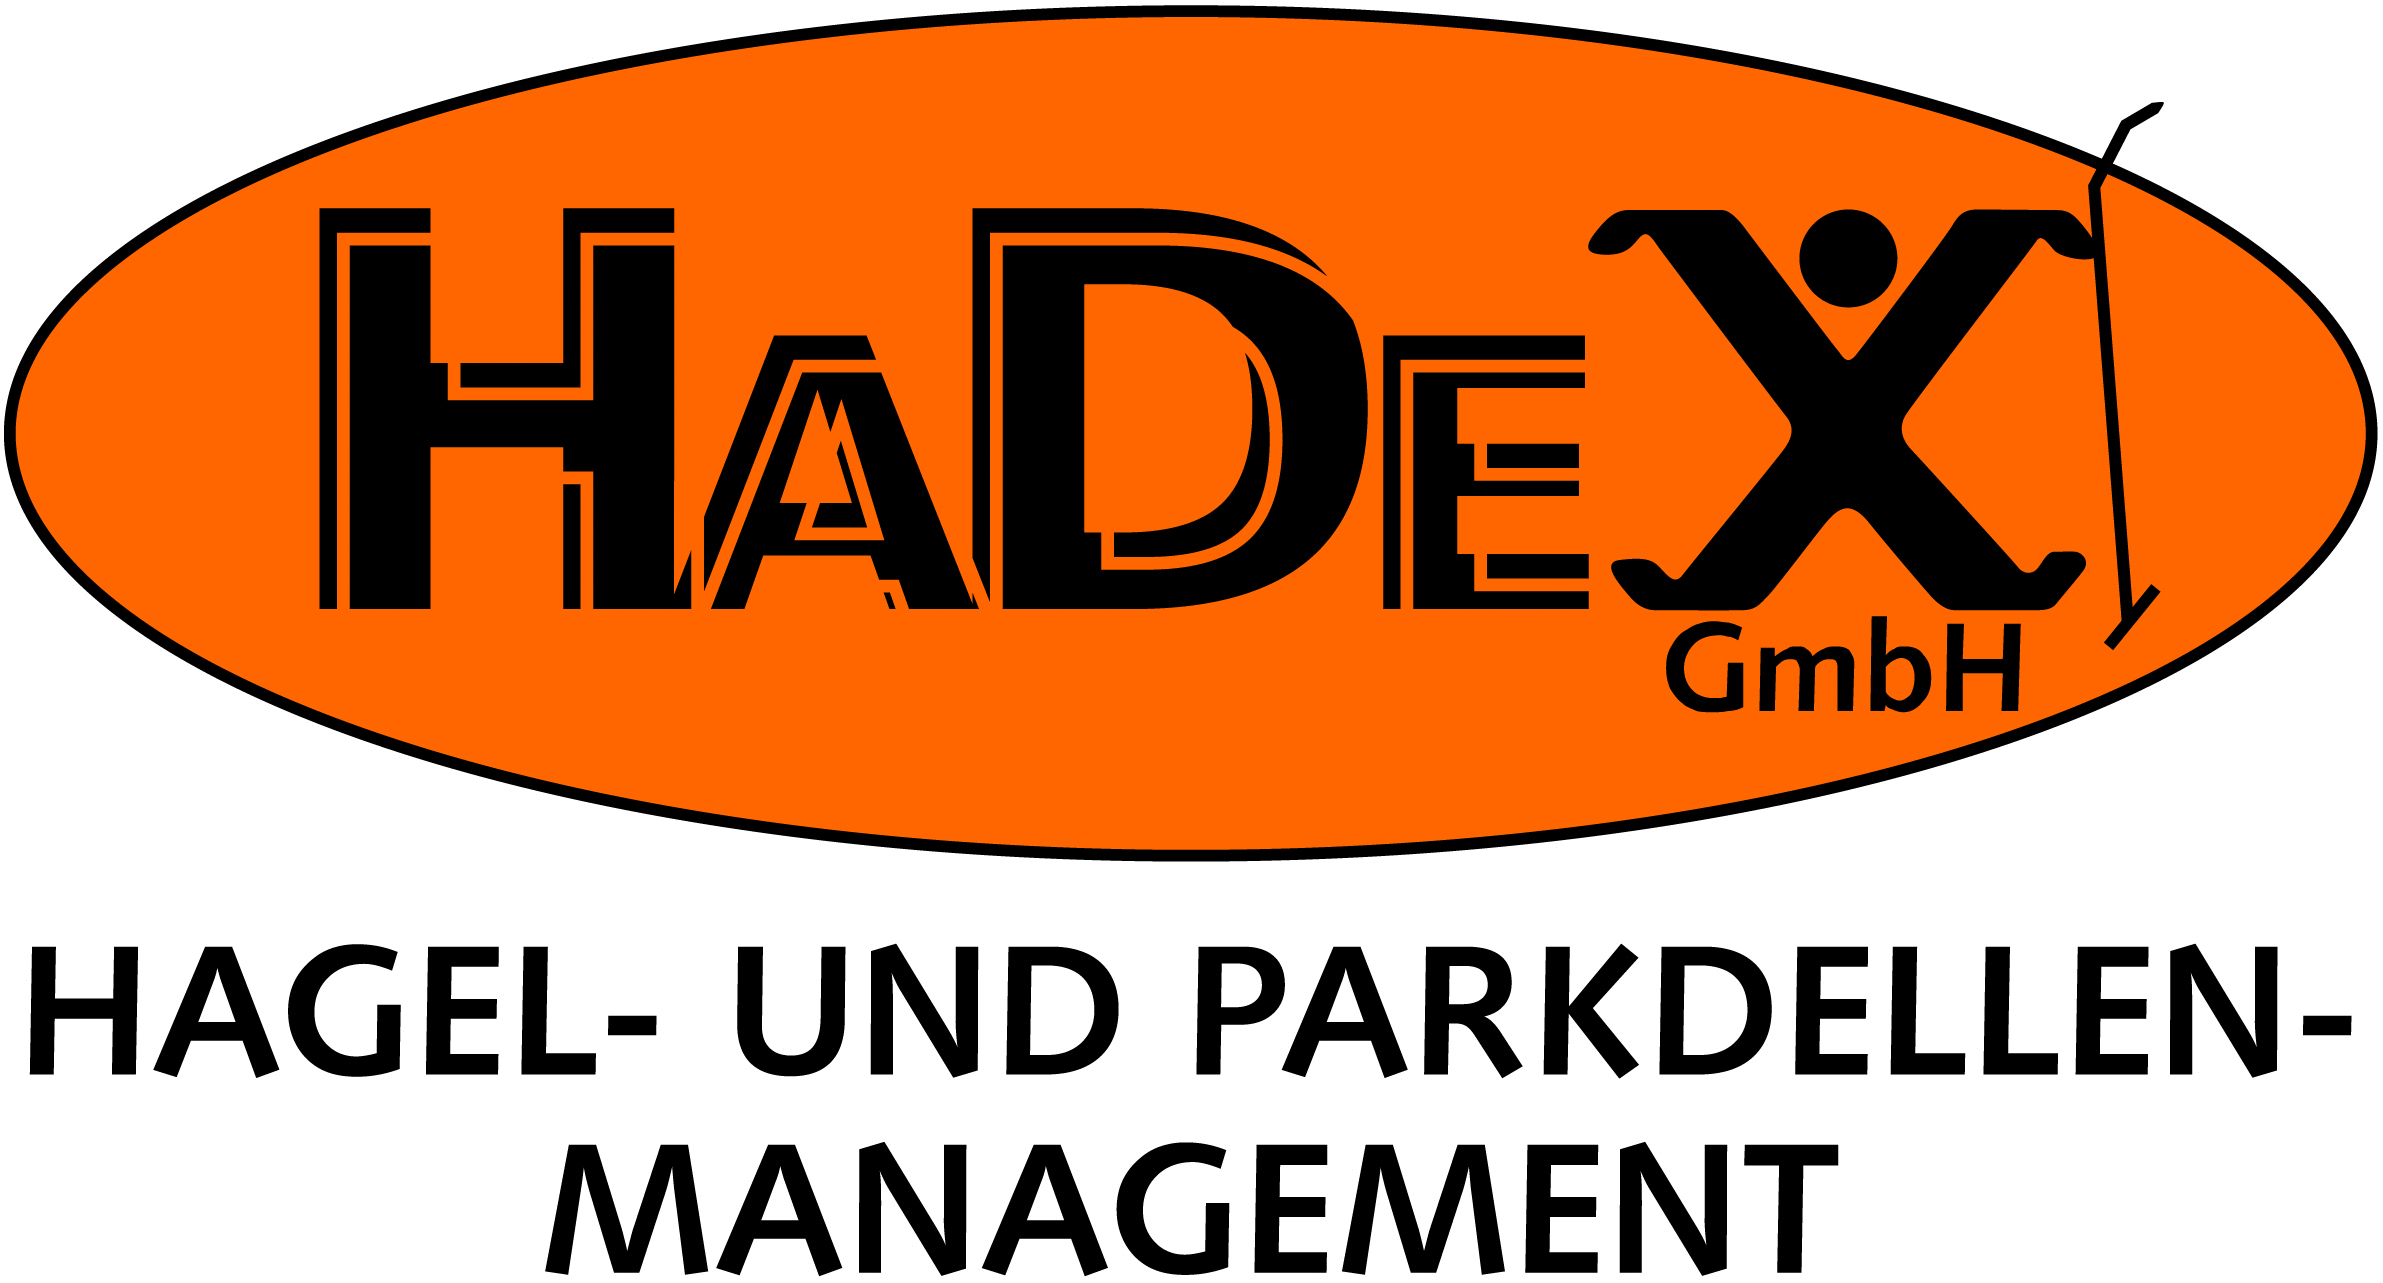 HaDeX24.de - PDR-Tools